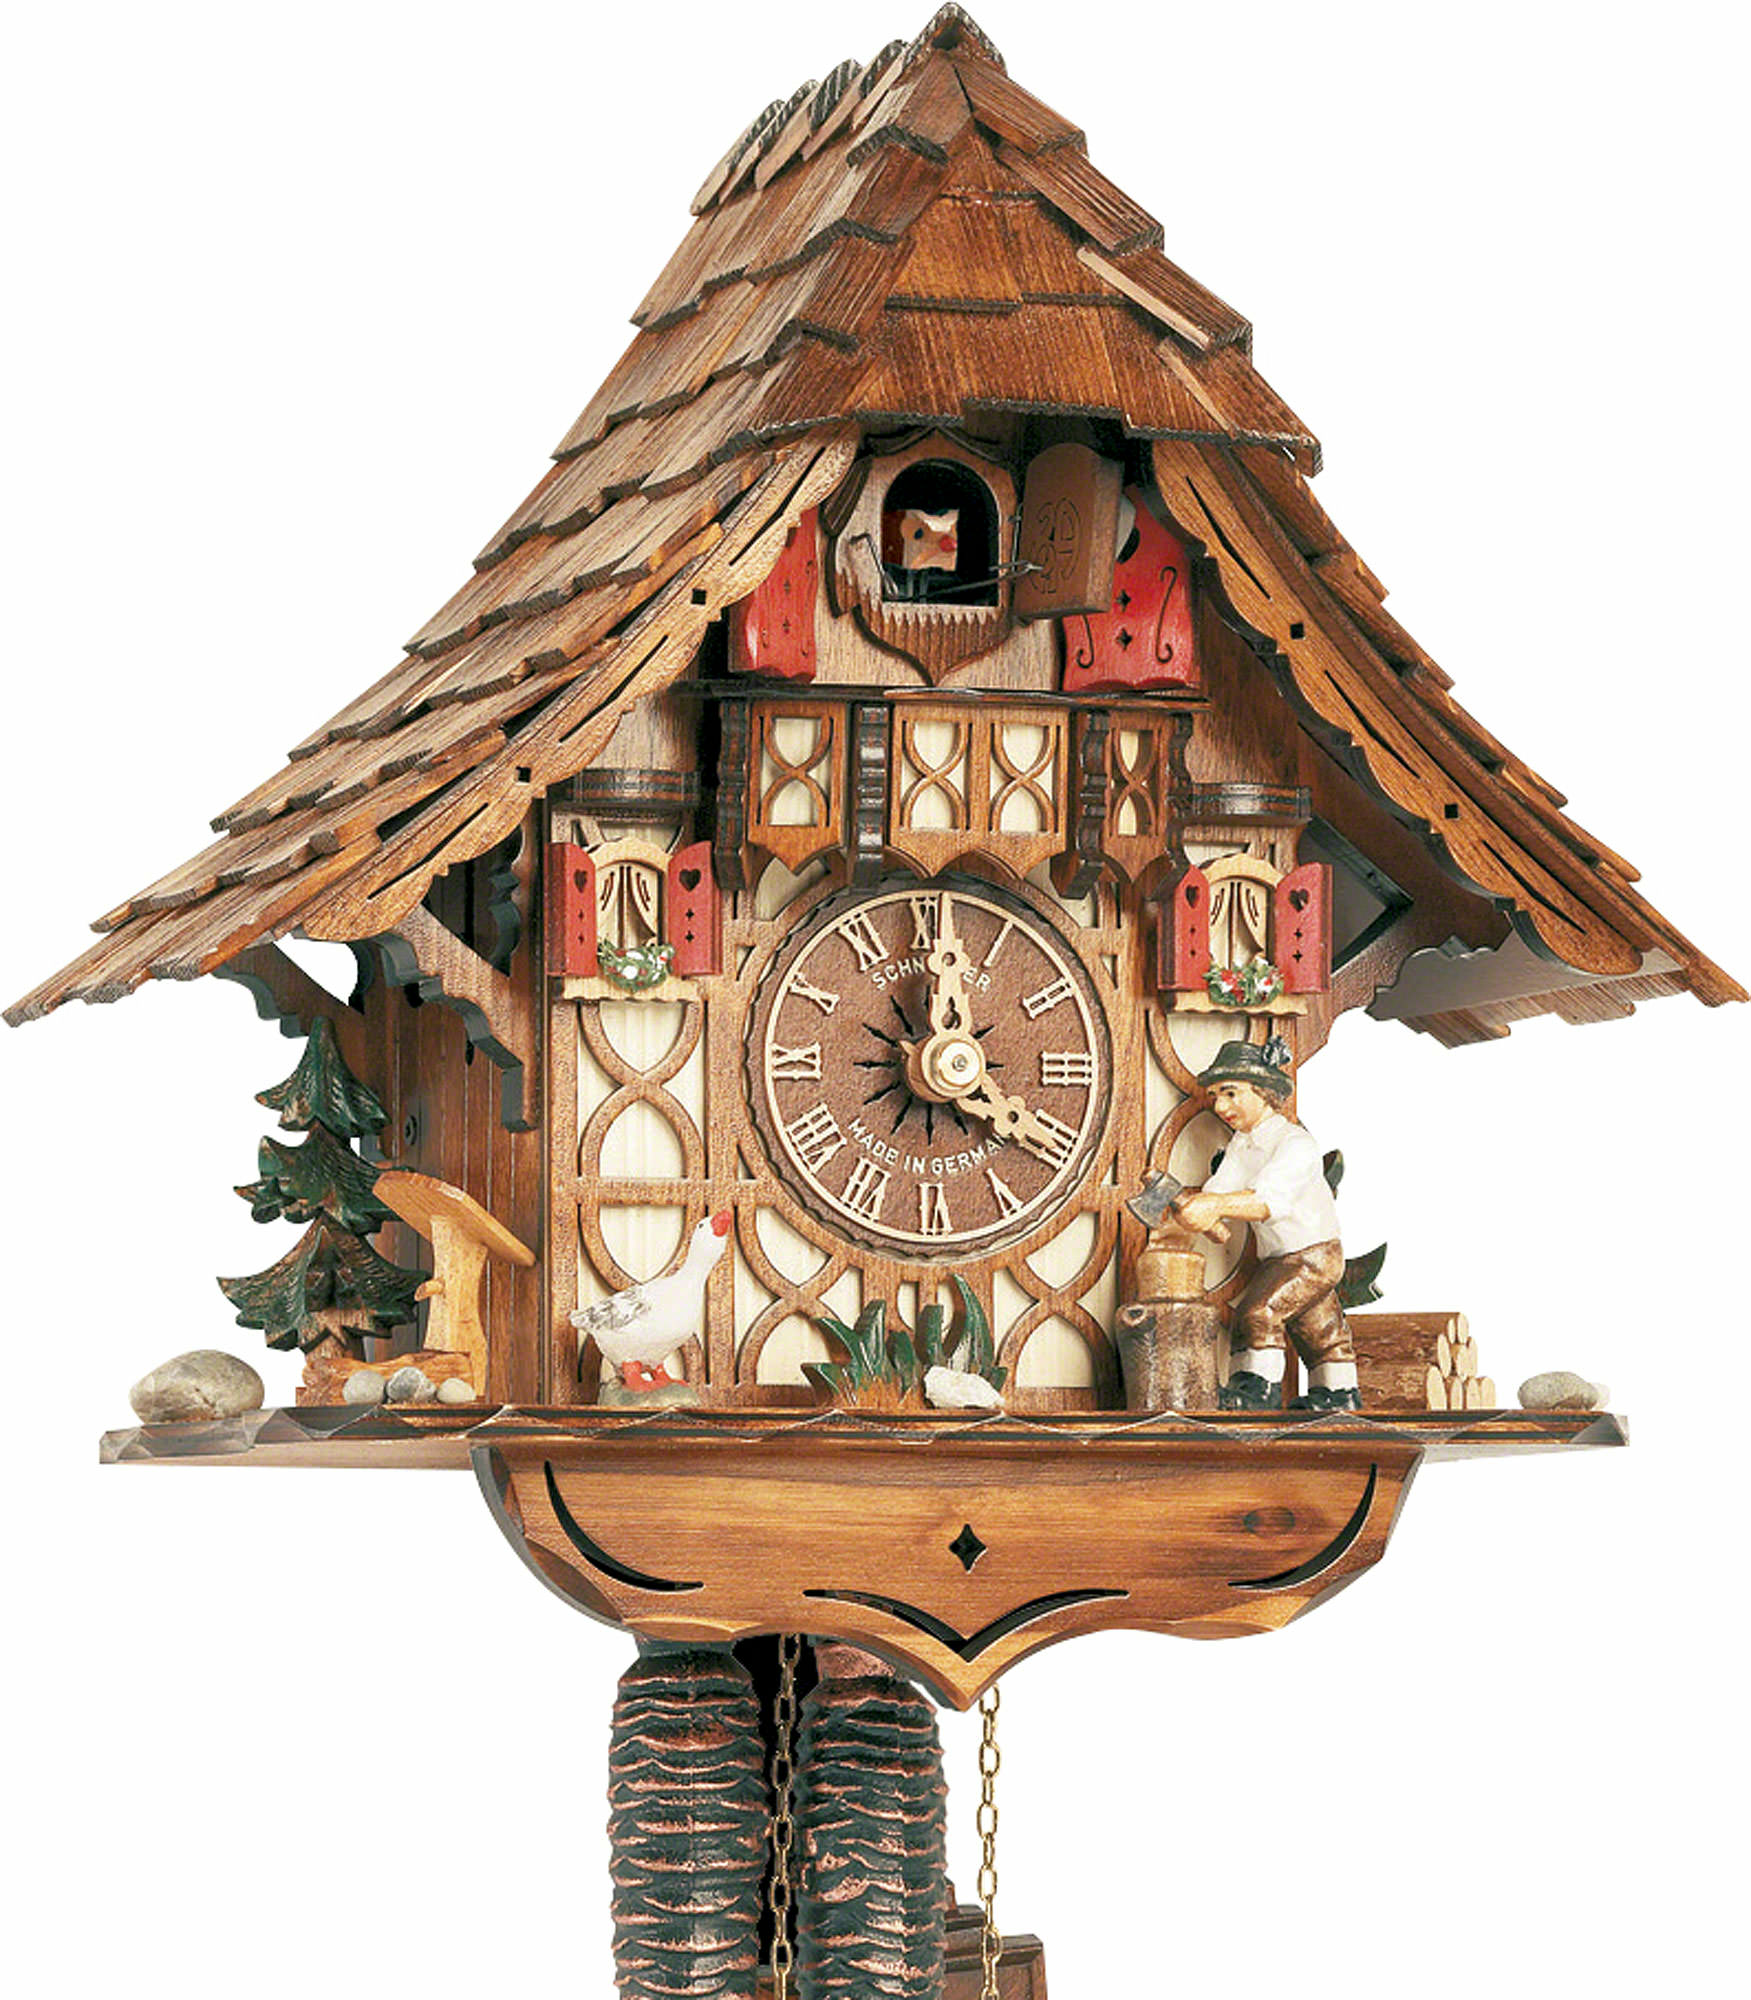 Cuckoo Clock 1 Day Movement Chalet Style 27cm By Anton